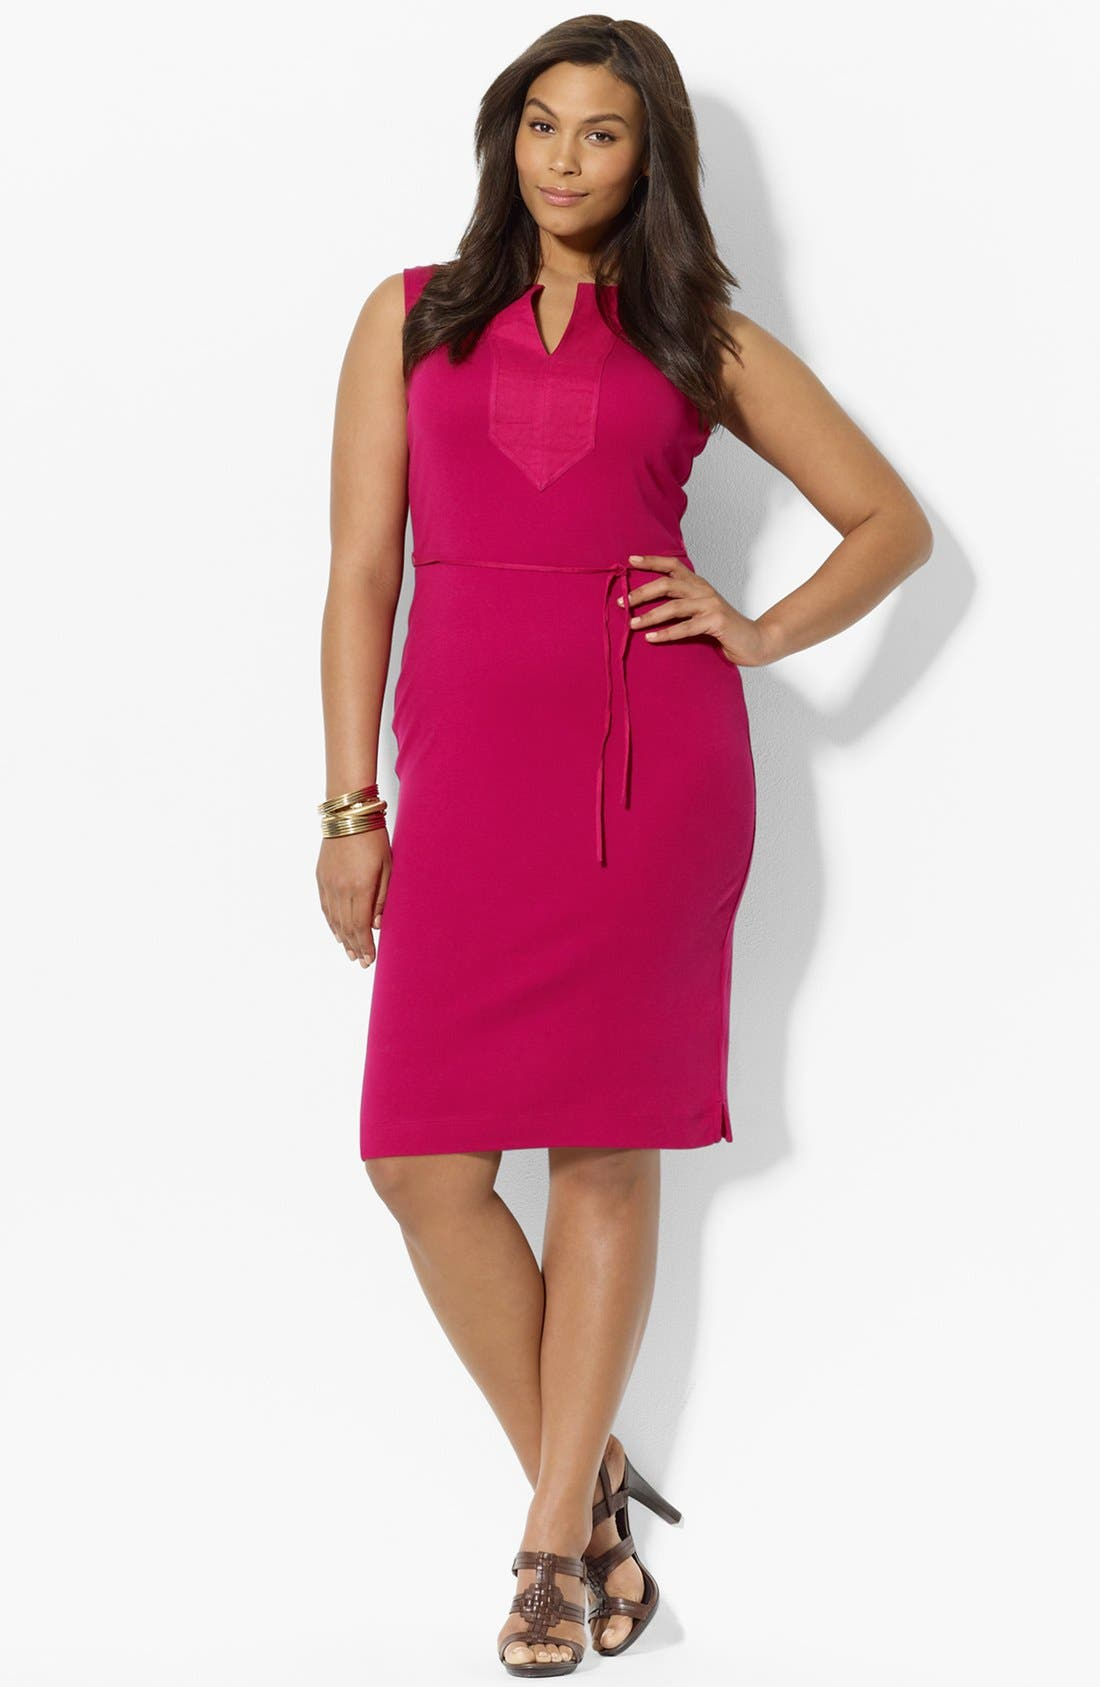 Alternate Image 1 Selected - Lauren Ralph Lauren Woven Trim Cotton Dress (Plus Size)